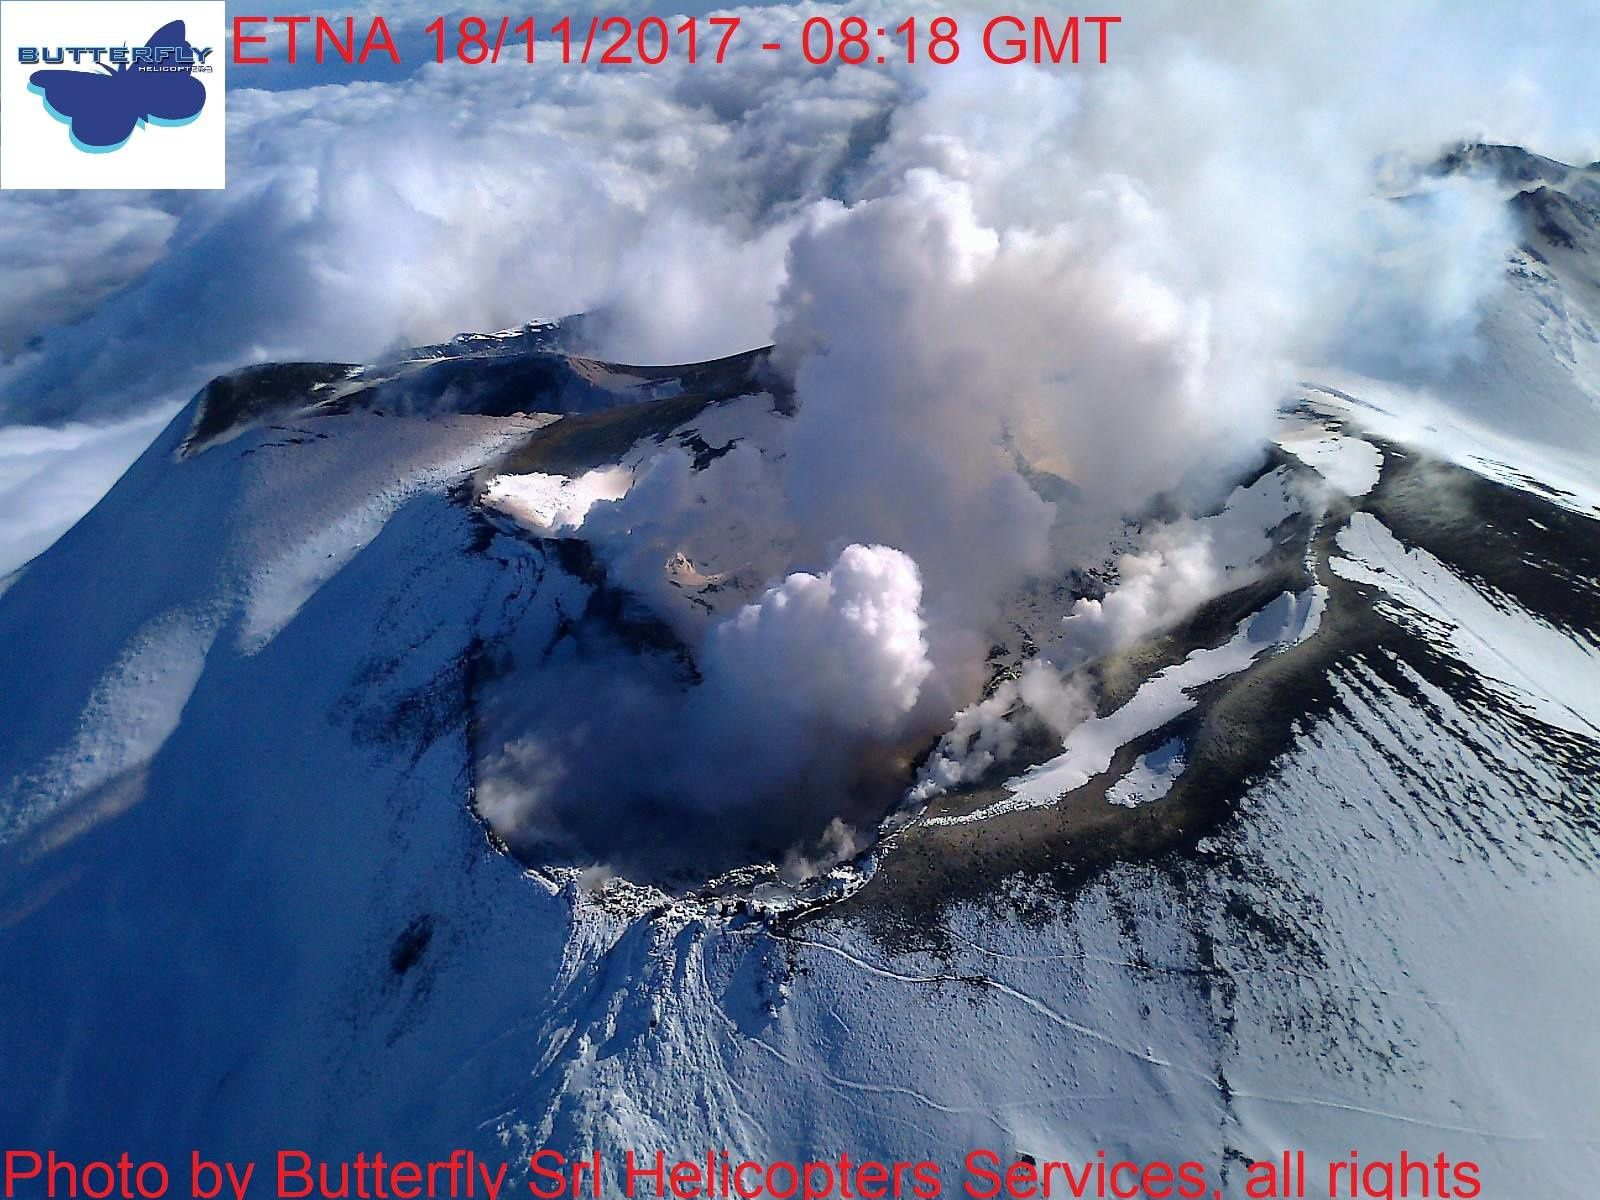 Etna - dégazage sommital le 18.11.2017 / 8h18 GMT  - photo © Joseph Nasi / Butterfly Helicopters